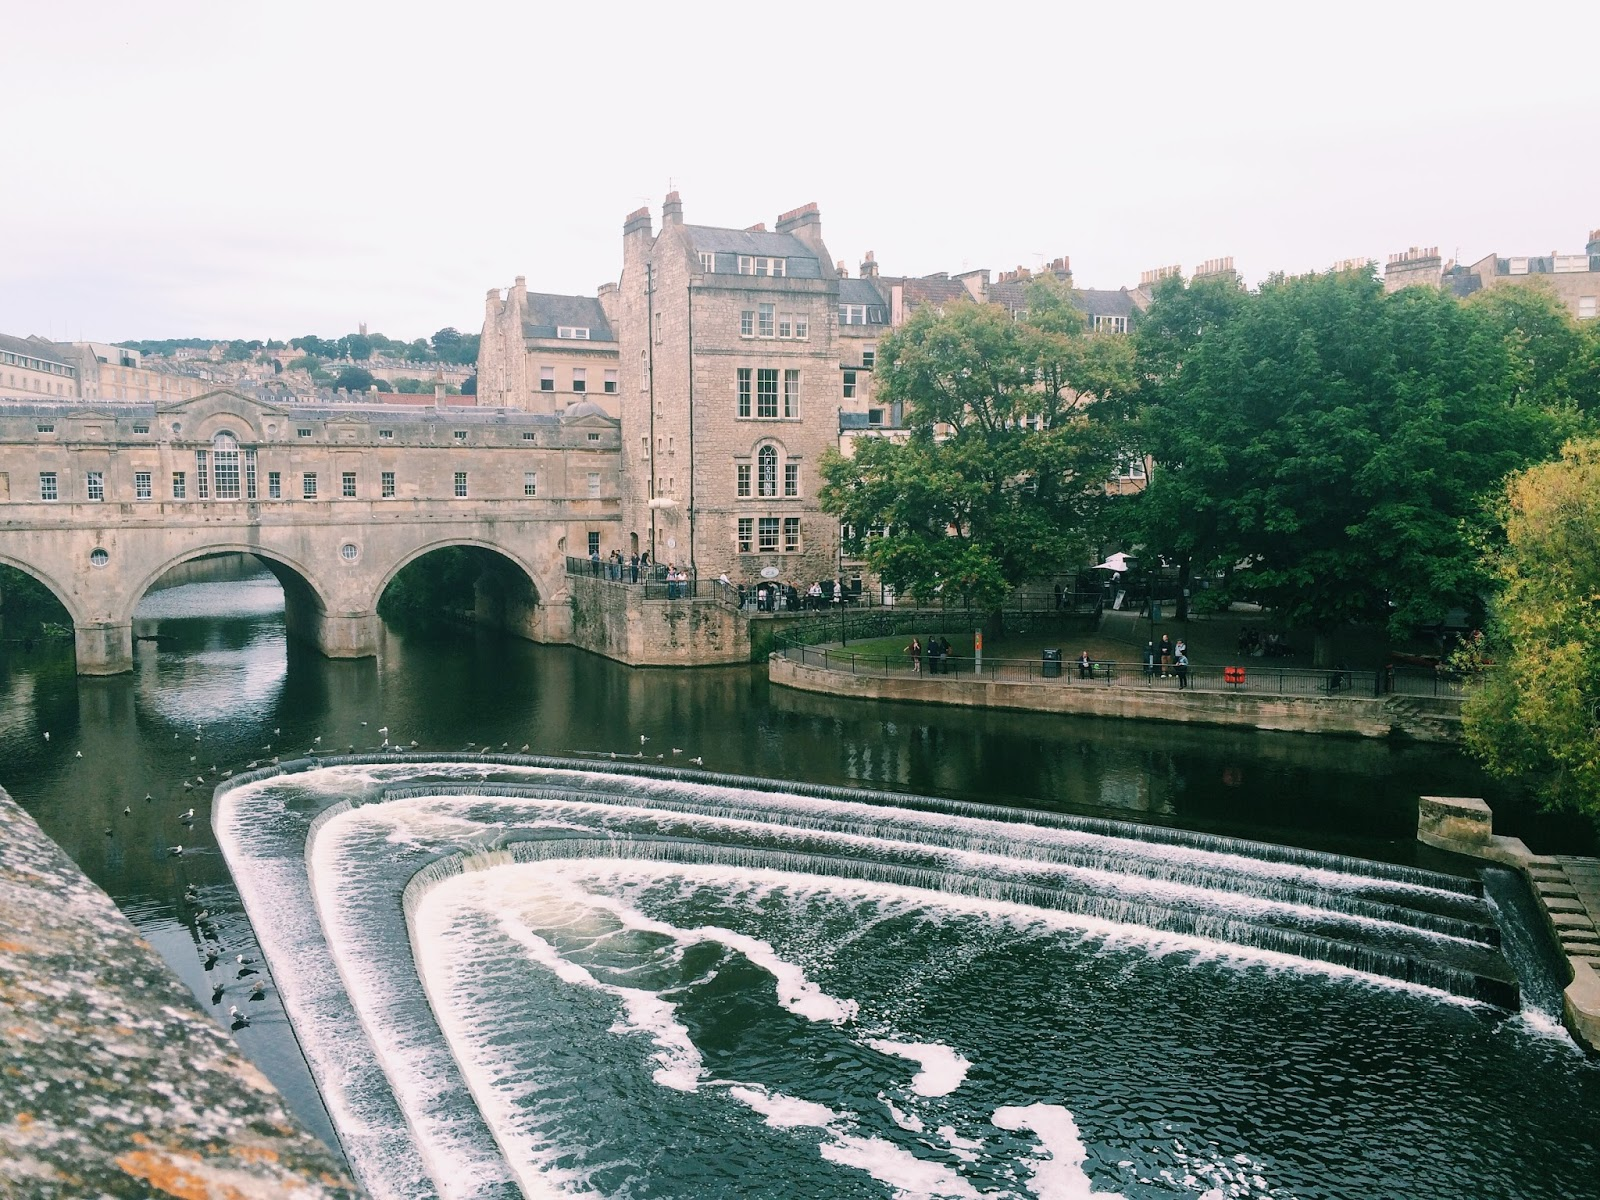 River Avon in Bath, England